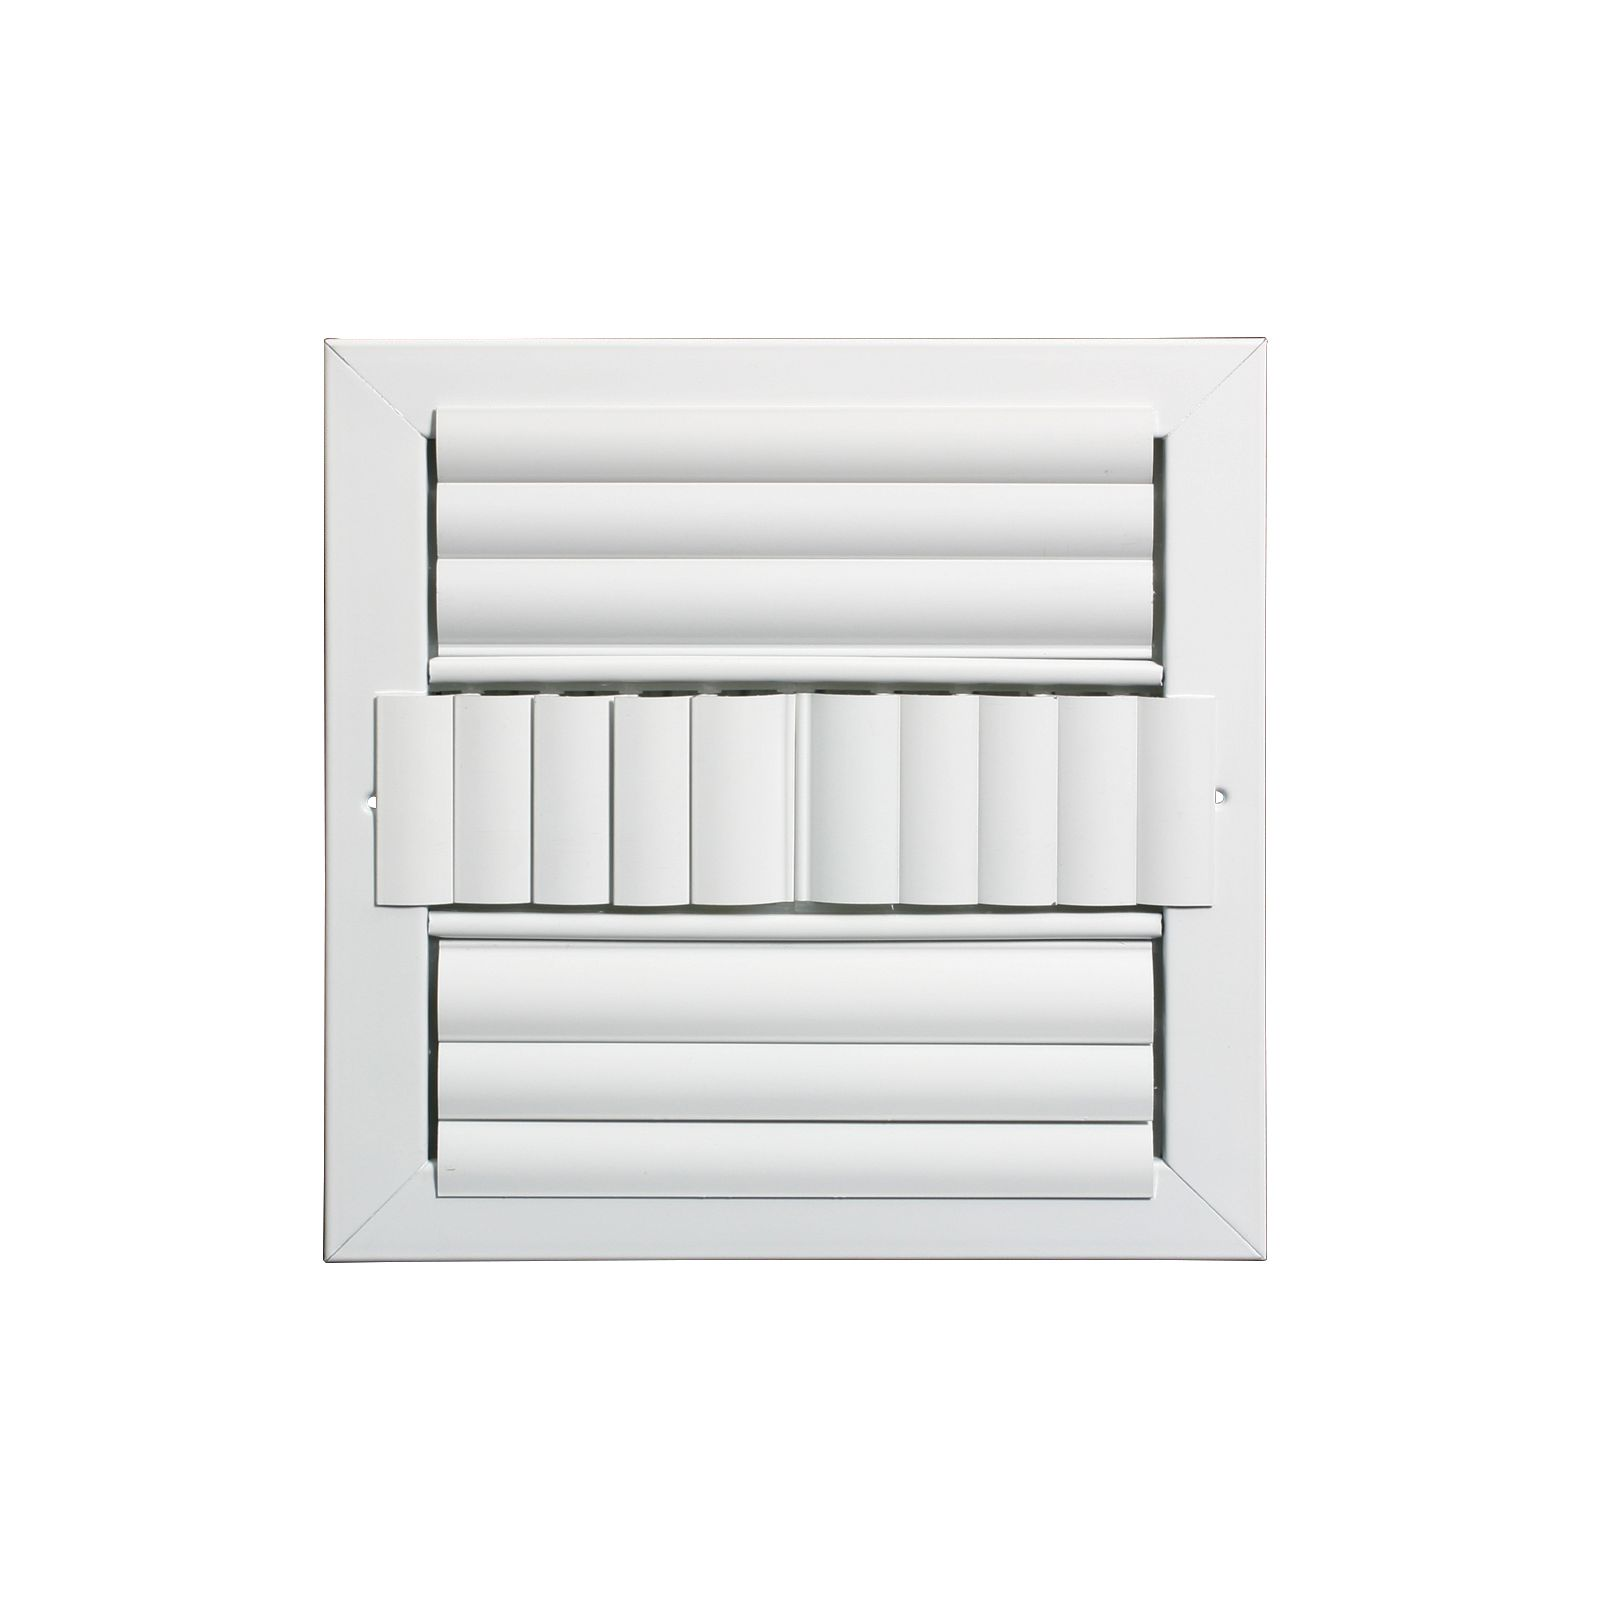 "Grille Tech CL4M1010 - Aluminum Ceiling 4Way Deflection Supply, Multi-shutter 10"" X 10"" White"